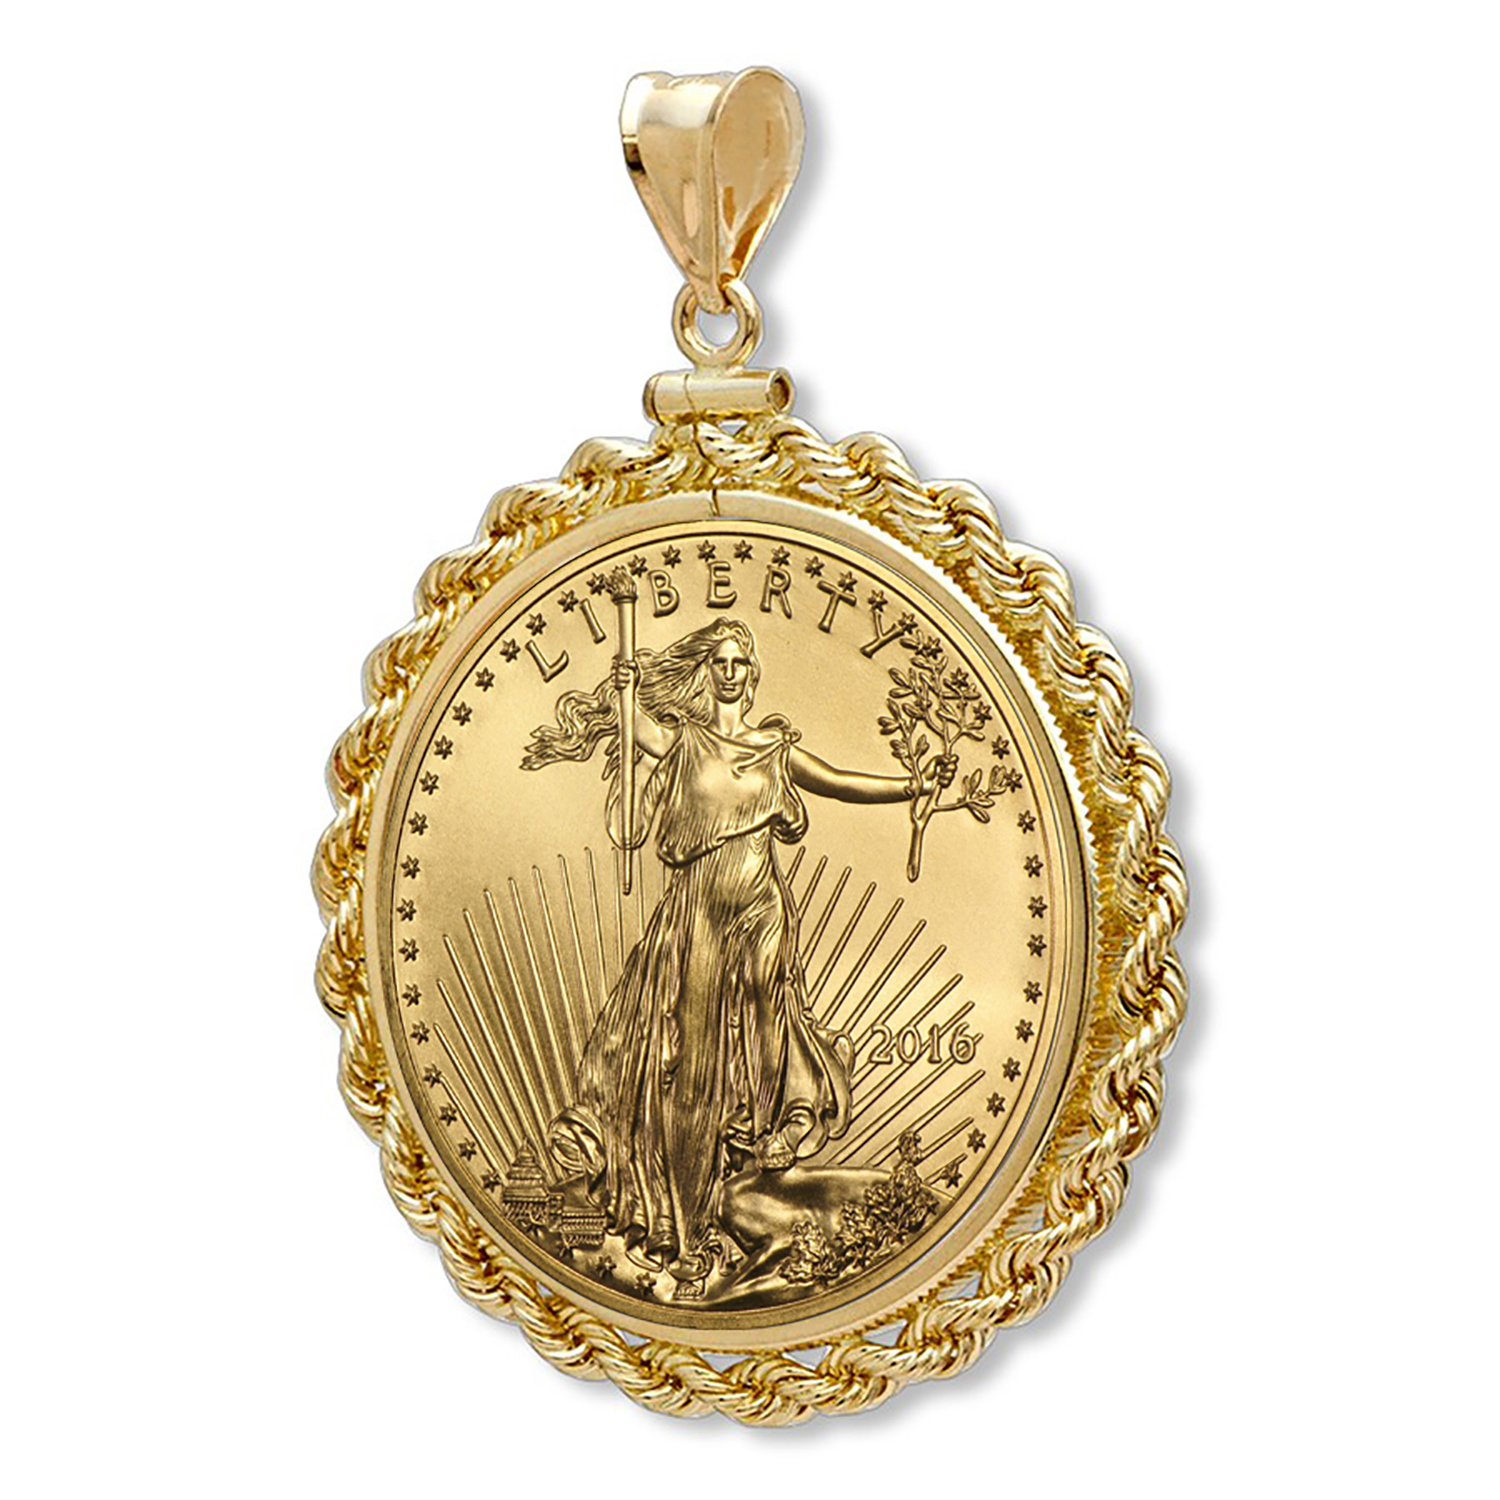 2016 1/10 oz Gold Eagle Pendant (Rope-ScrewTop Bezel)